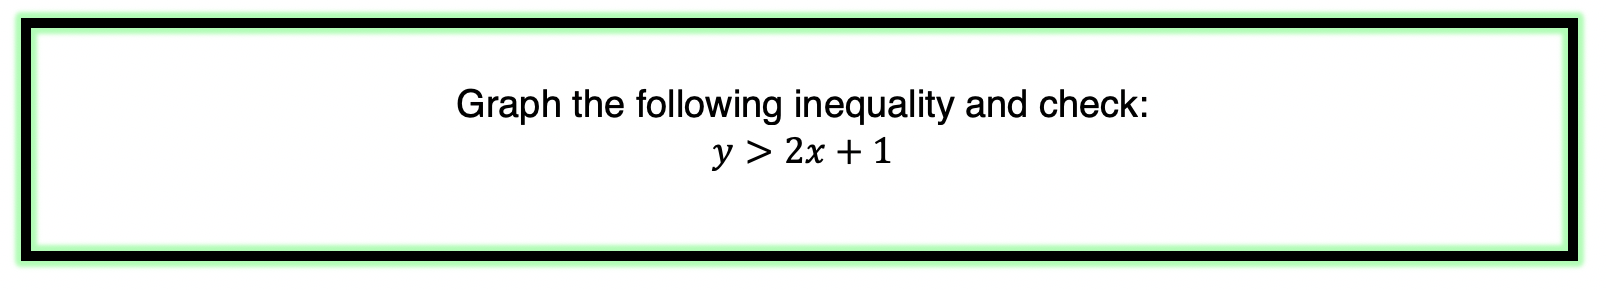 graphing inequality example